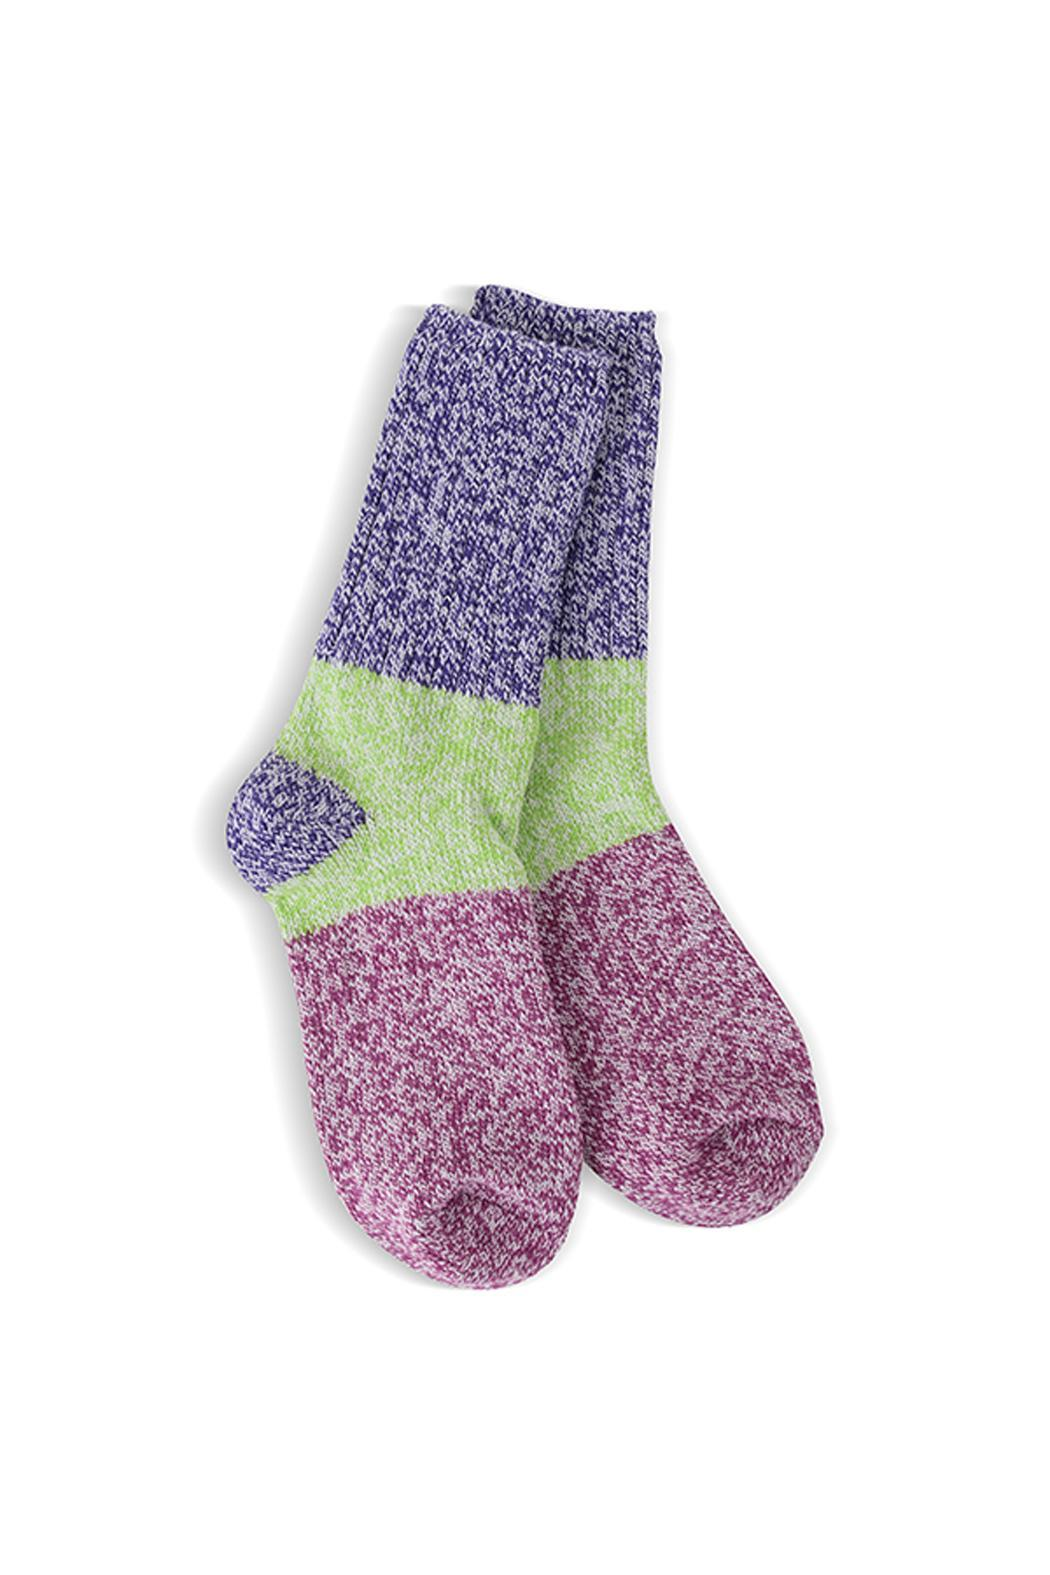 Mouse Creek Trading Co. Children Crew Socks - Front Cropped Image